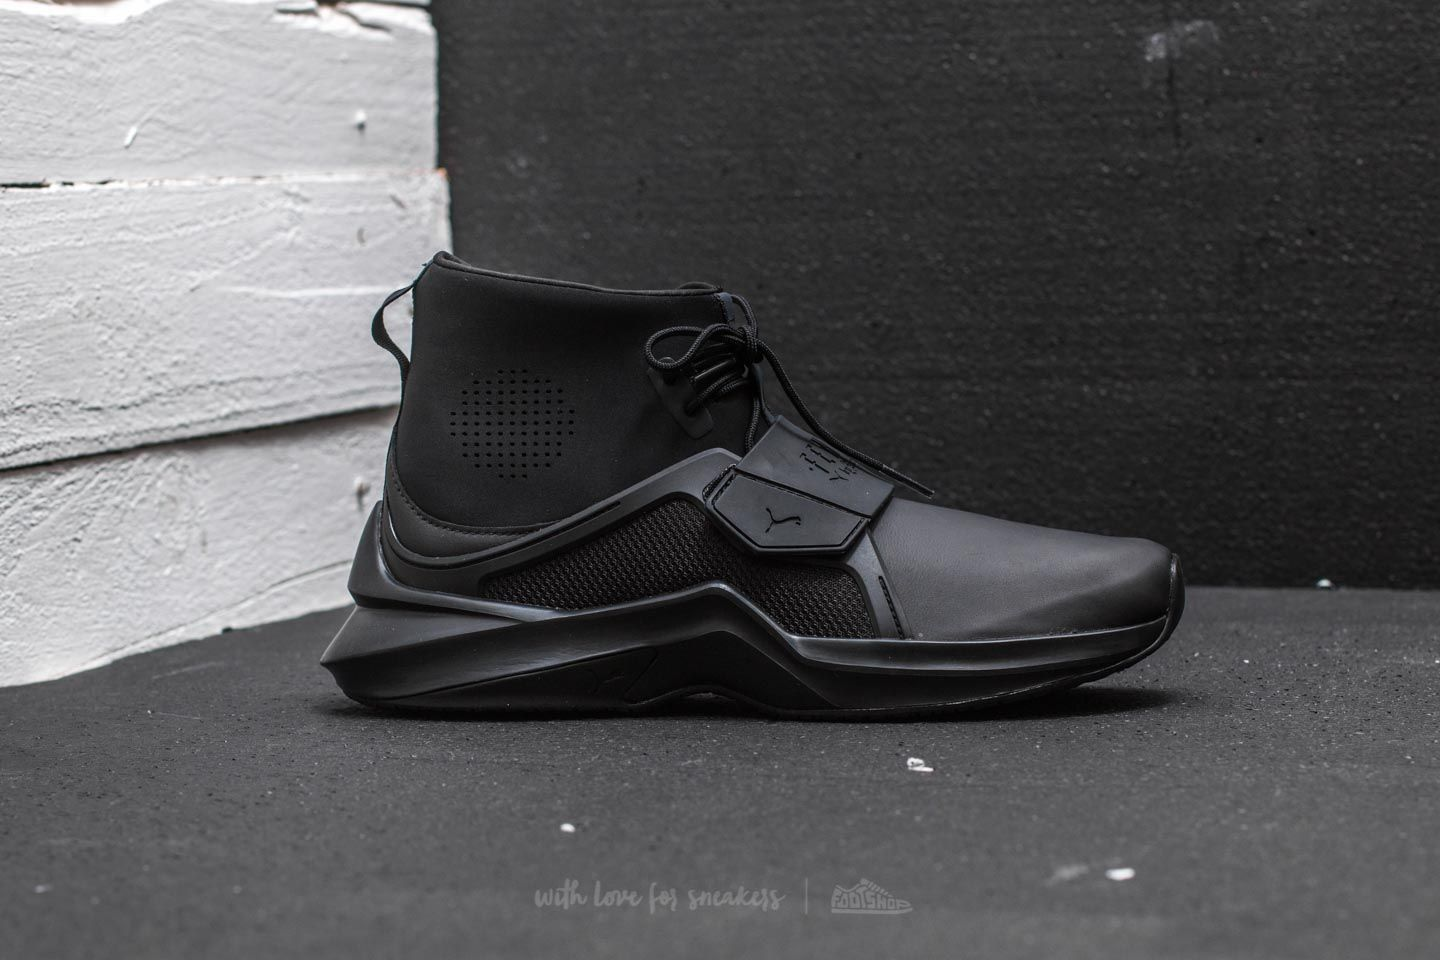 fe5269e5f15cd0 Puma Fenty The Trainer Hi Puma Black-Puma Black at a great price 118 €